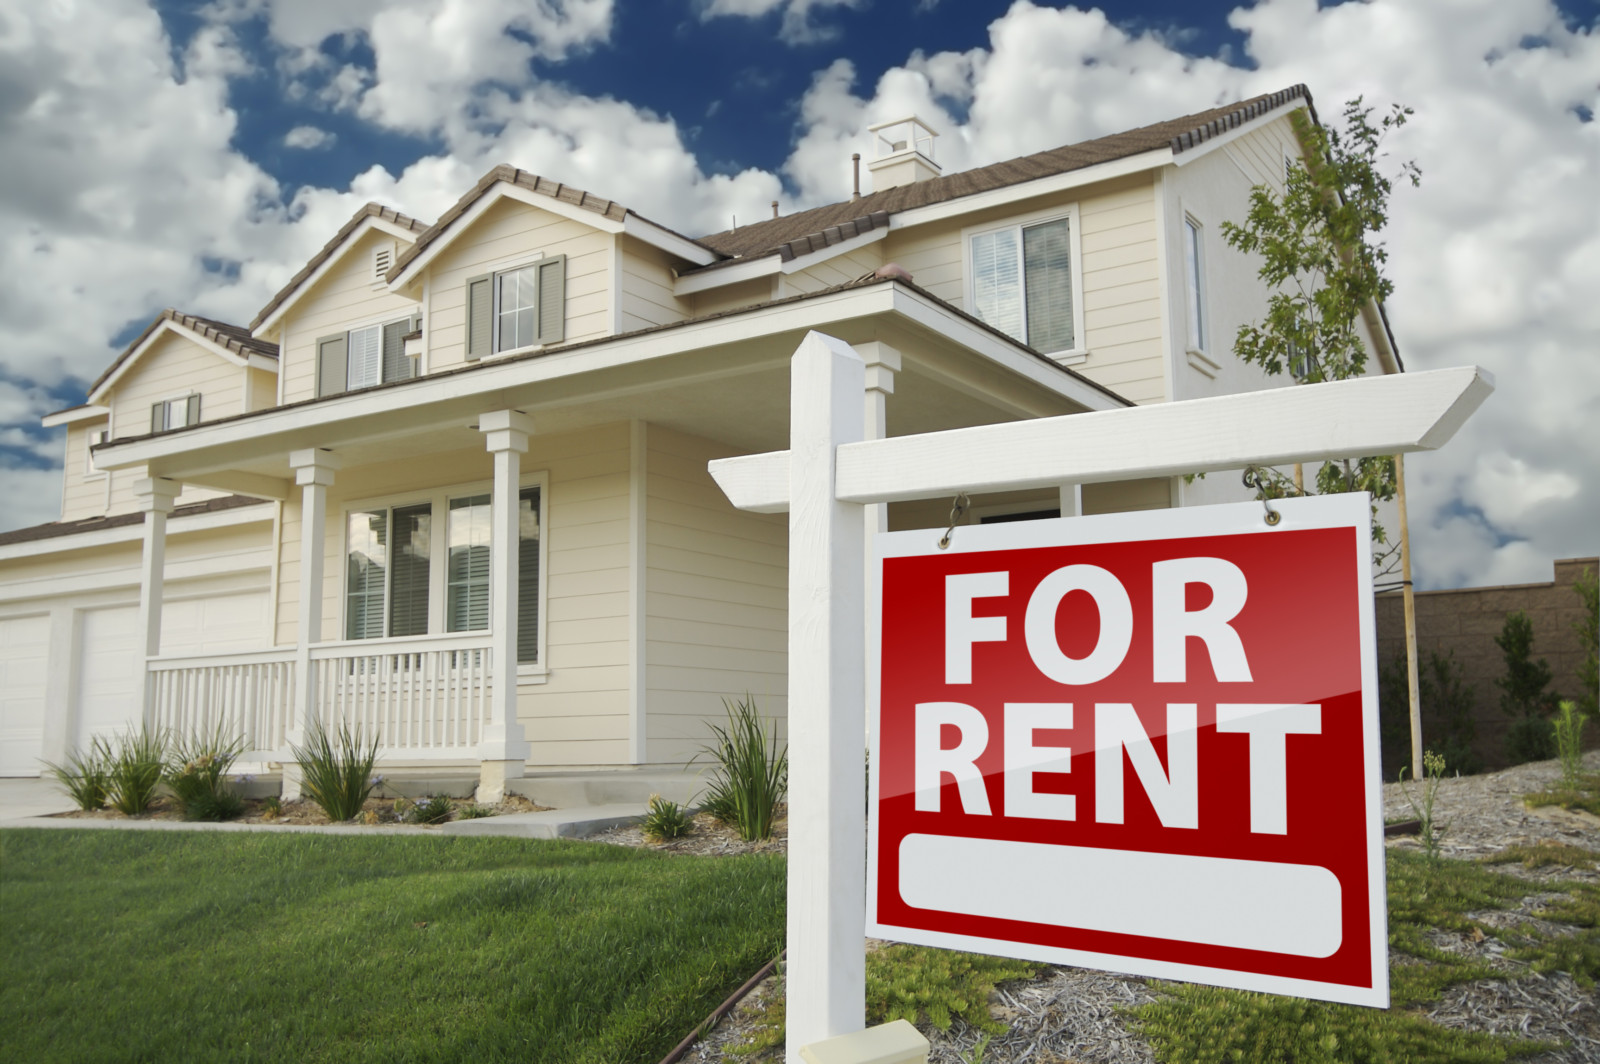 Own-to-Rent: The Foreclosure Crisis and Single-Family Home Rentals - Zillow Research